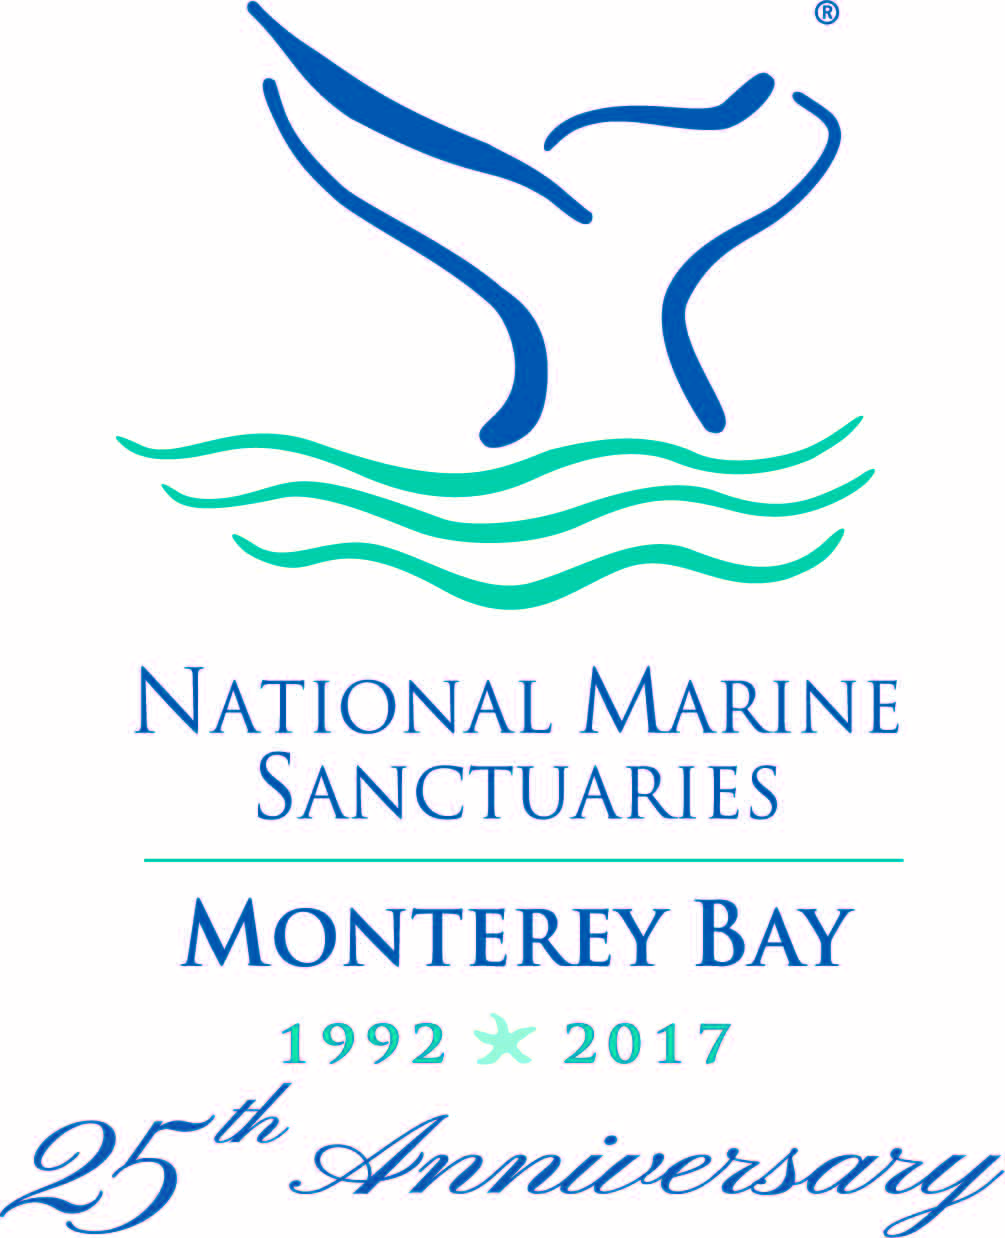 Monterey Bay National Marine Sanctuaries